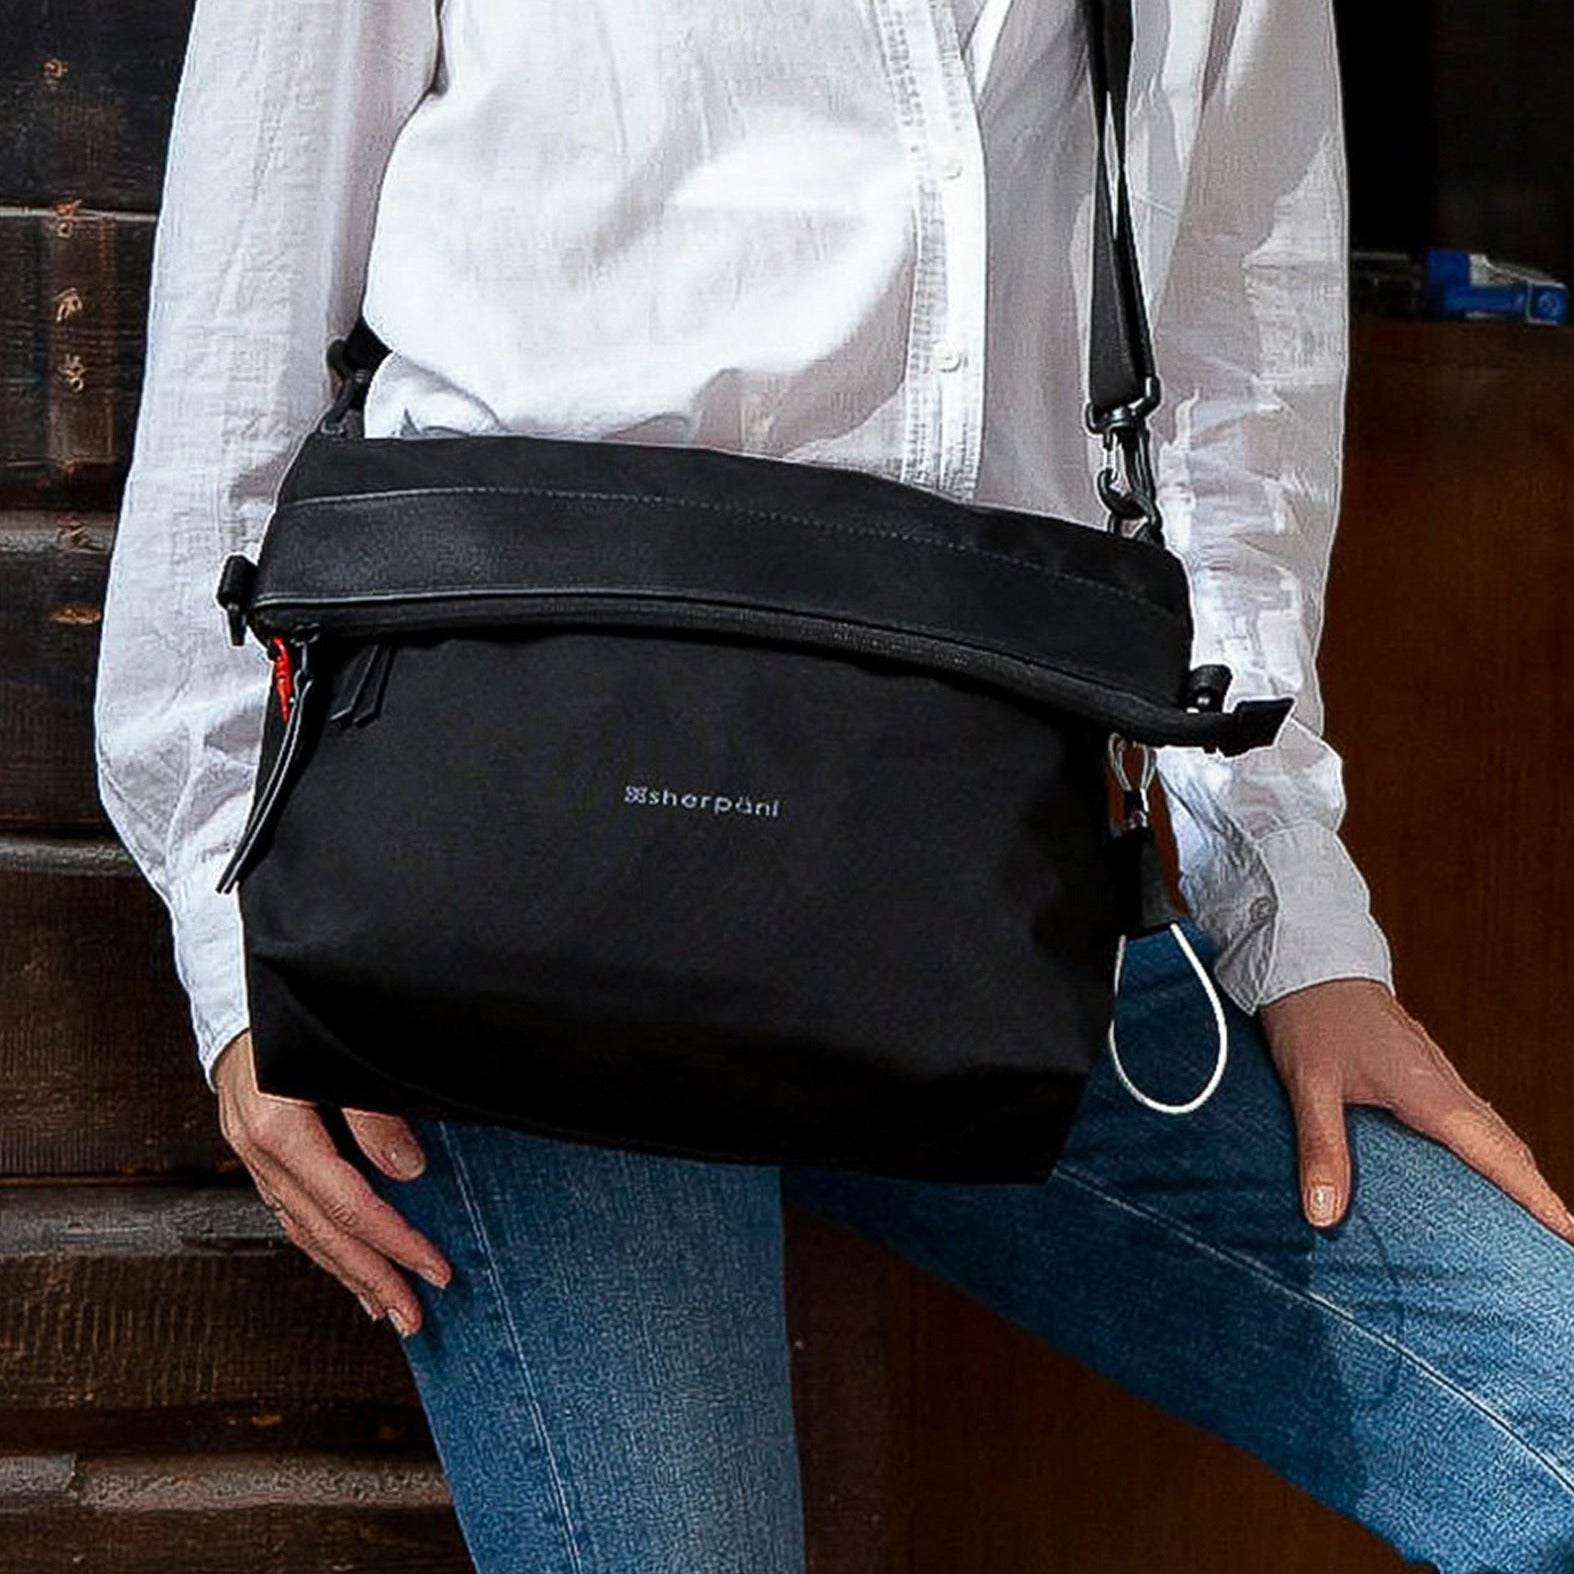 Black Anti Theft Reversible Crossbody (worn as crossbody) with anti-theft features on a woman walking outside